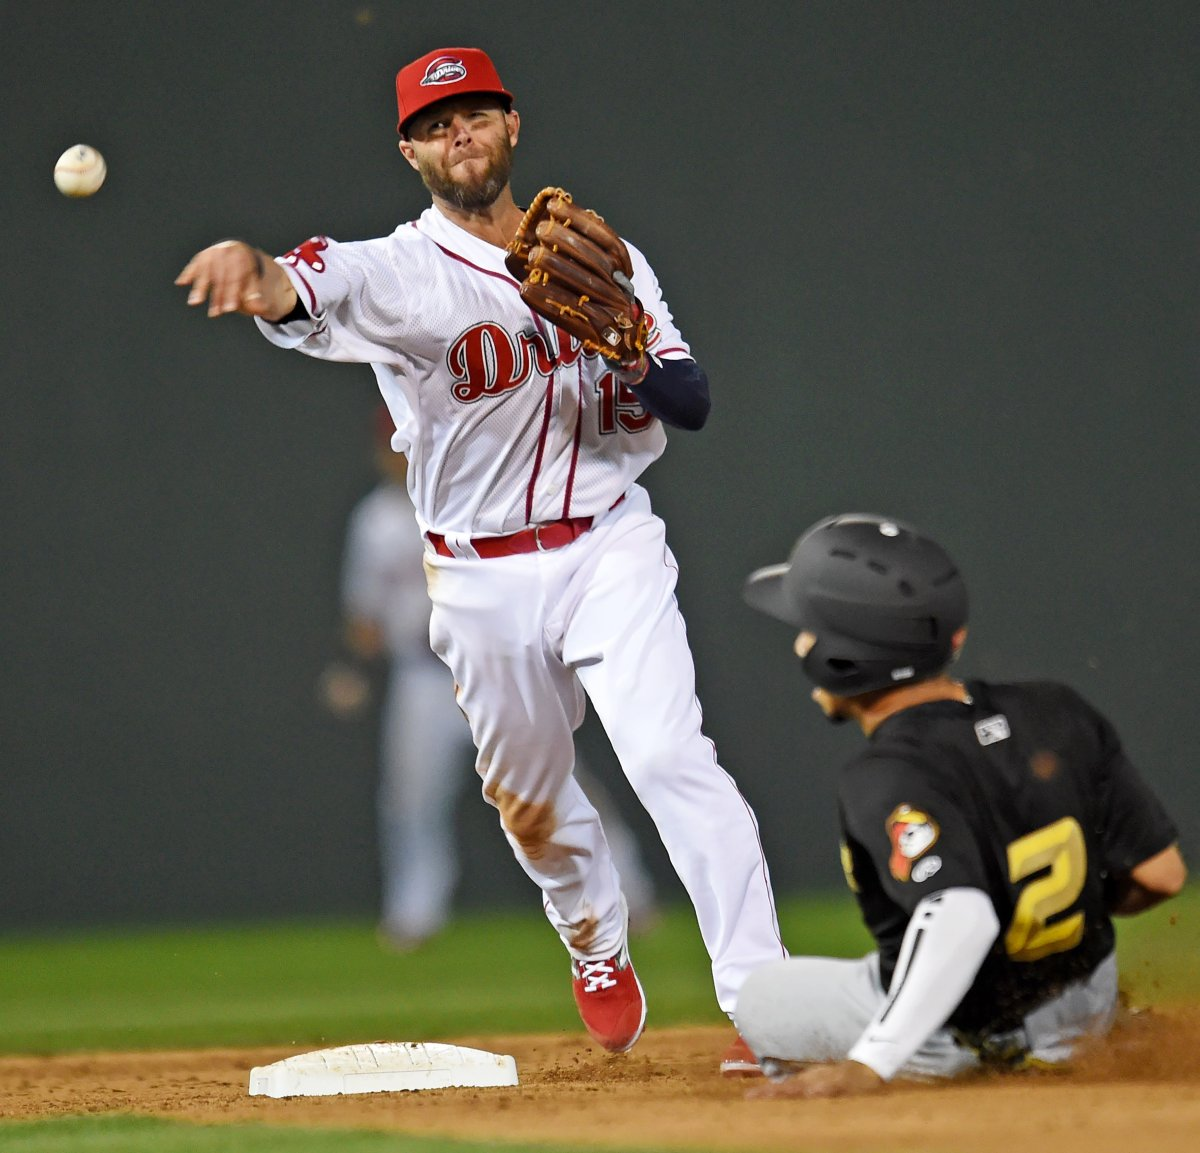 #RedSox' Dustin Pedroia Collects Two Hits in First Game of Rehab Assignment with Class A Greenville